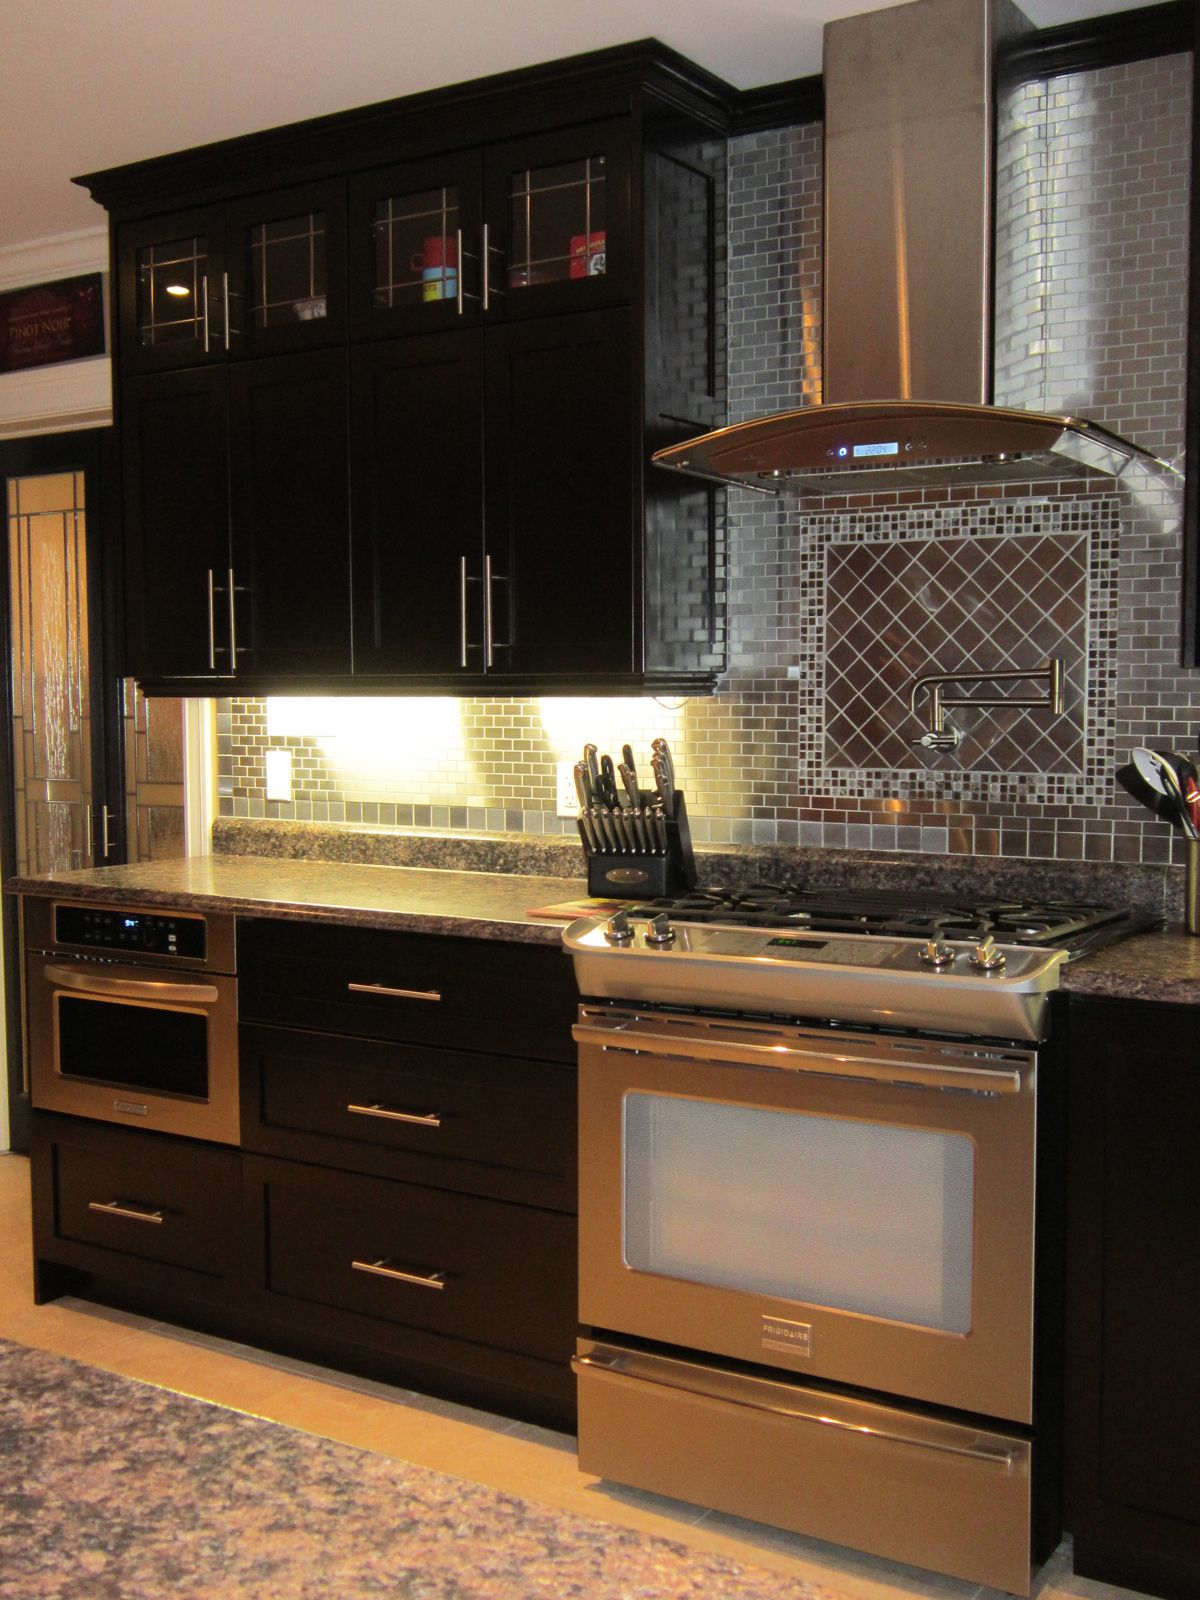 Potfiller faucet in next house too AND the KitchenAid microwave ...